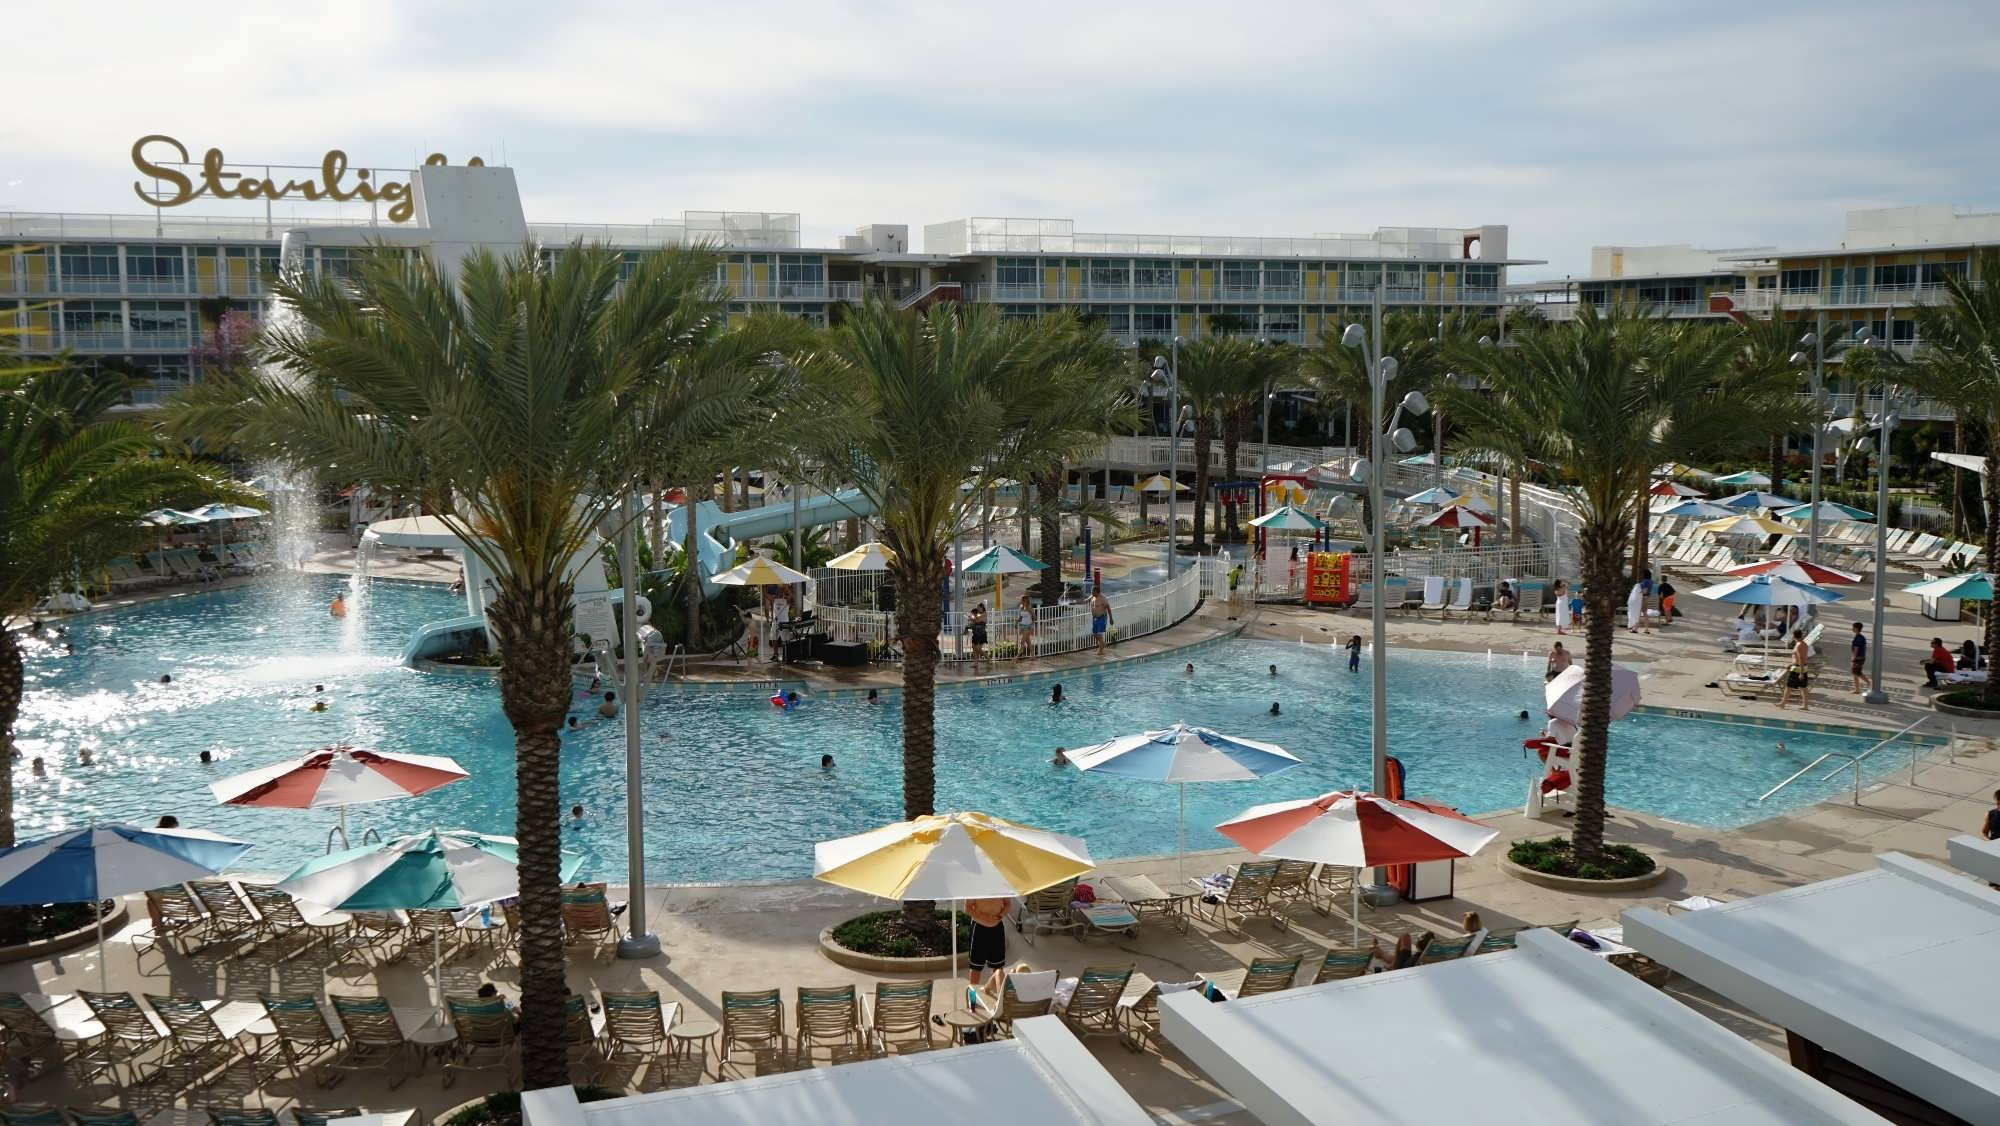 Cabana Bay Beach Resort The thrills of staying at